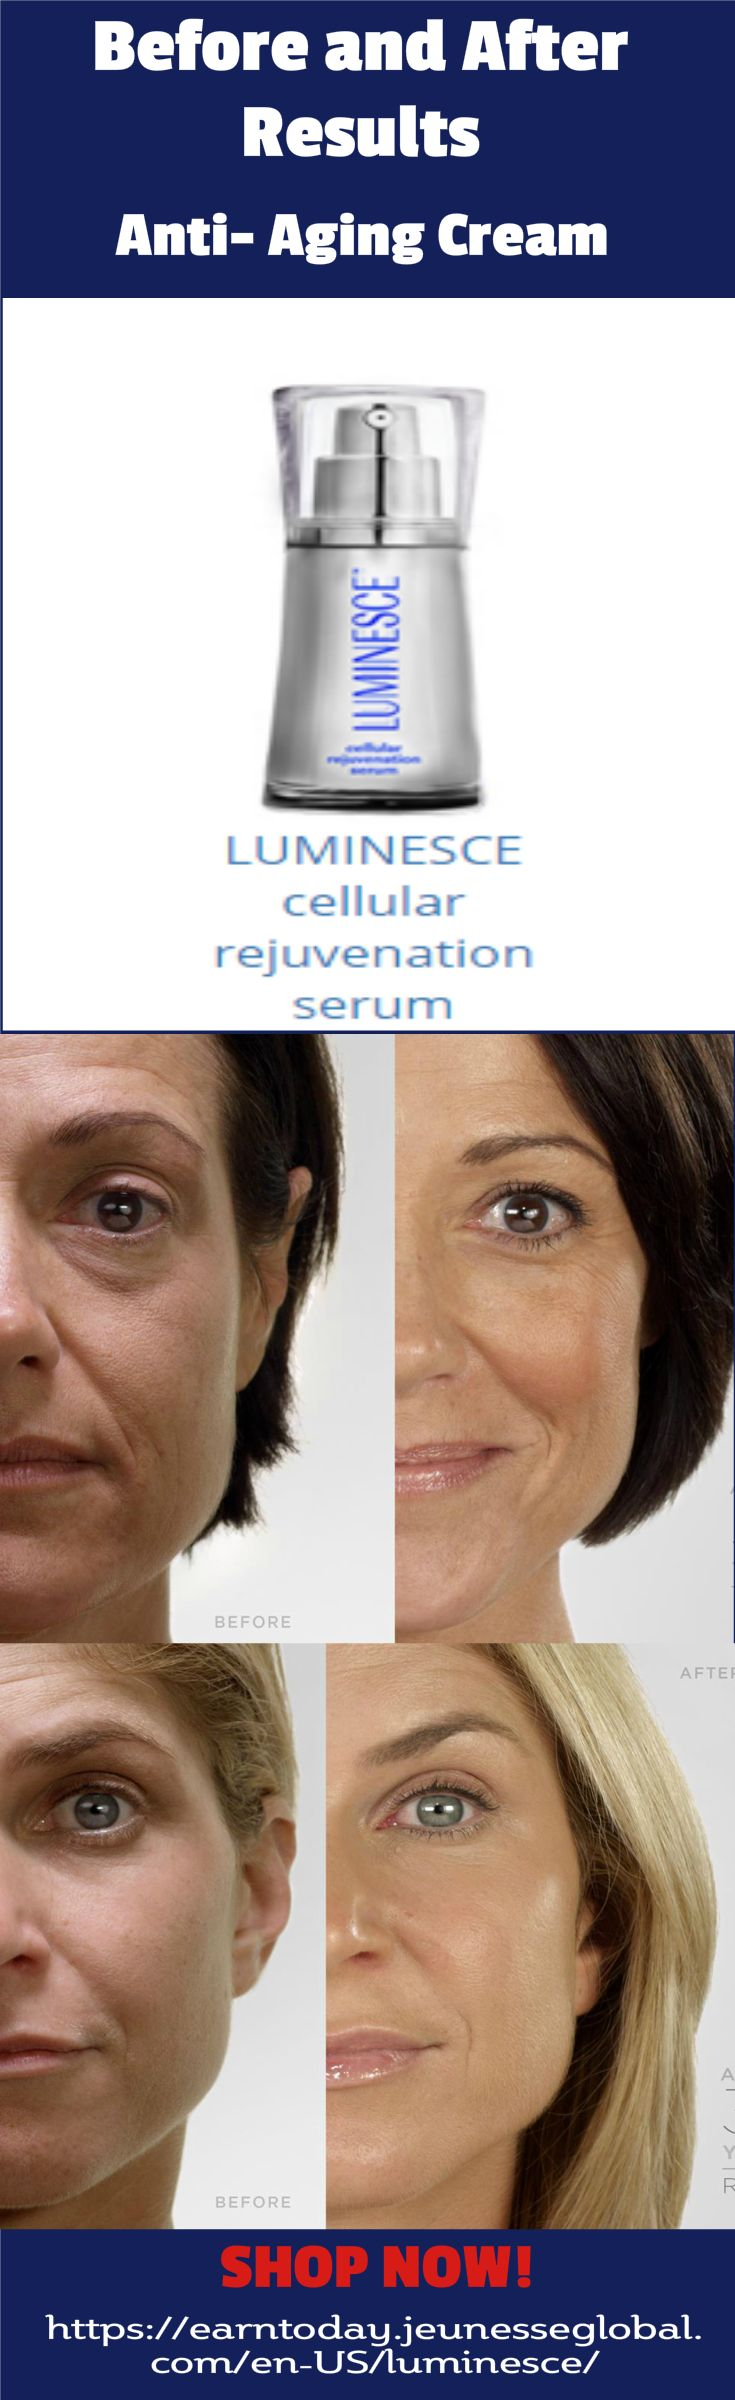 #Luminesce Before and After Results. 30 days money back guarantee.  #antiaging #skincare  http://earntoday.jeunesseglobal.com/en-US/luminesce/LUMINESCE